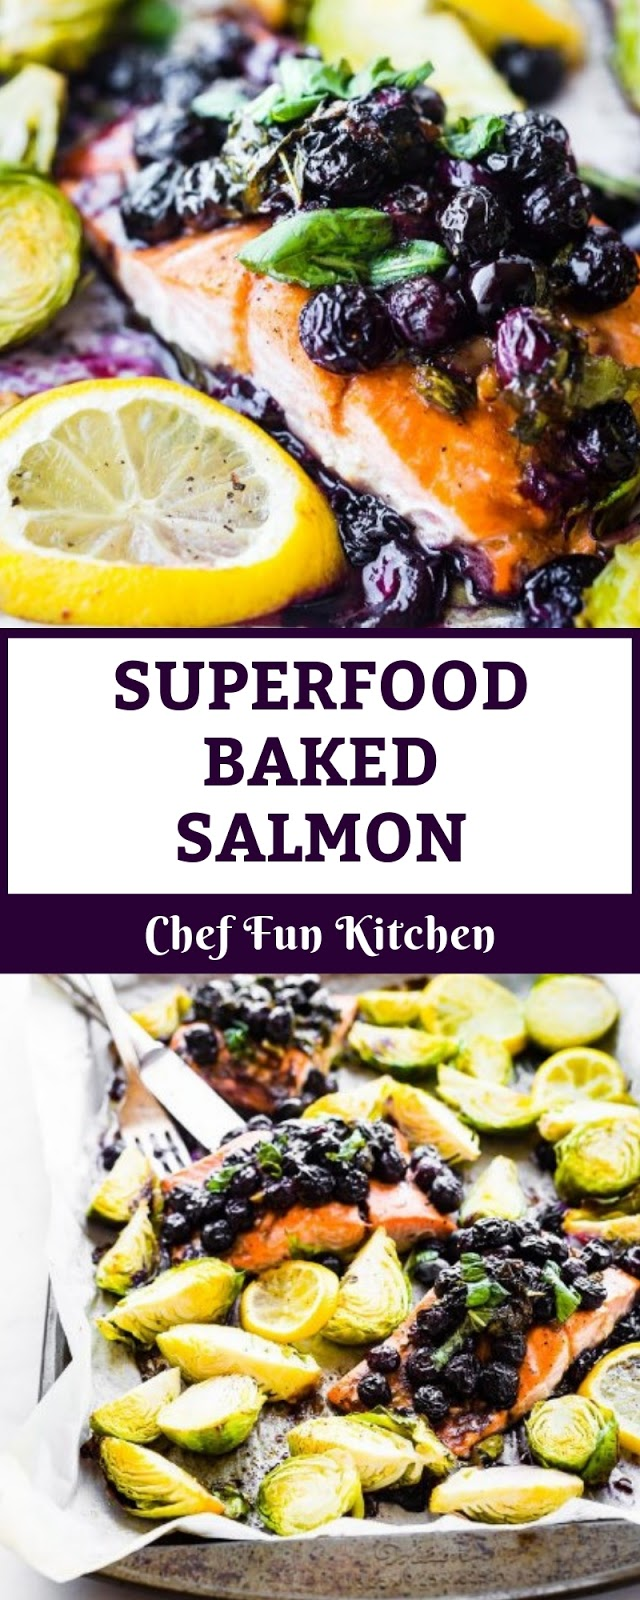 SUPERFOOD BAKED SALMON